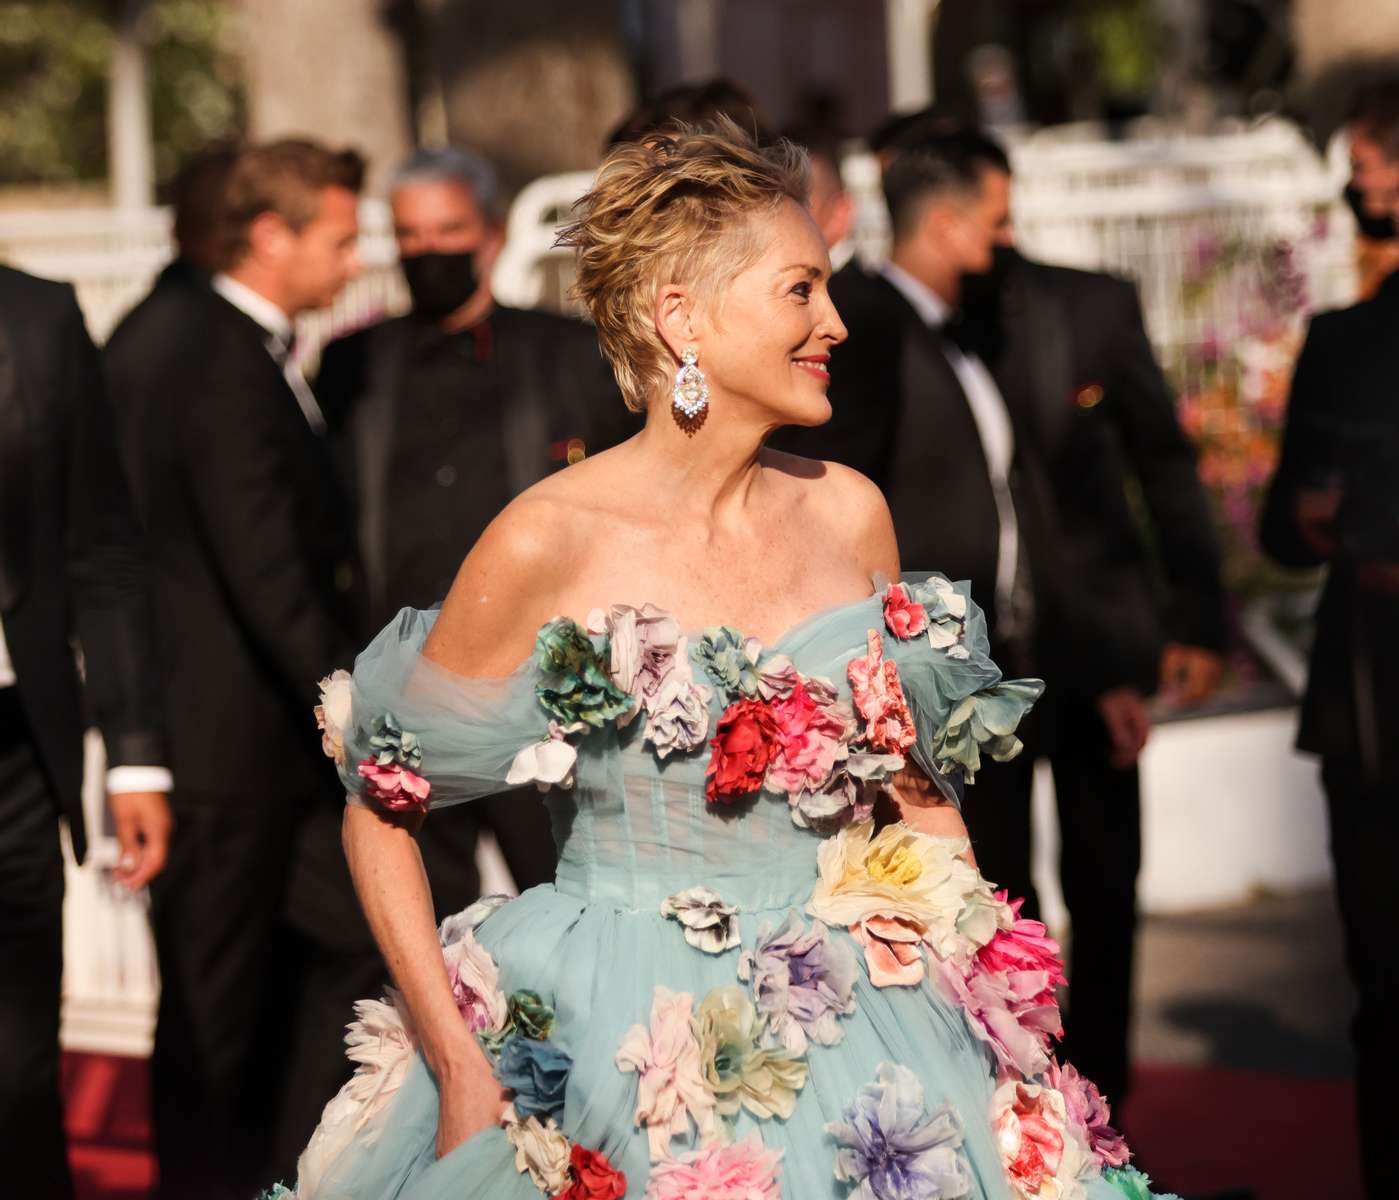 """Sharon Stone arrives for the screening of the film """"A Felesegem Tortenete"""" (The Story Of My Wife) in competition at the 74th annual Cannes Film Festival in Cannes, France on July 14, 2021."""